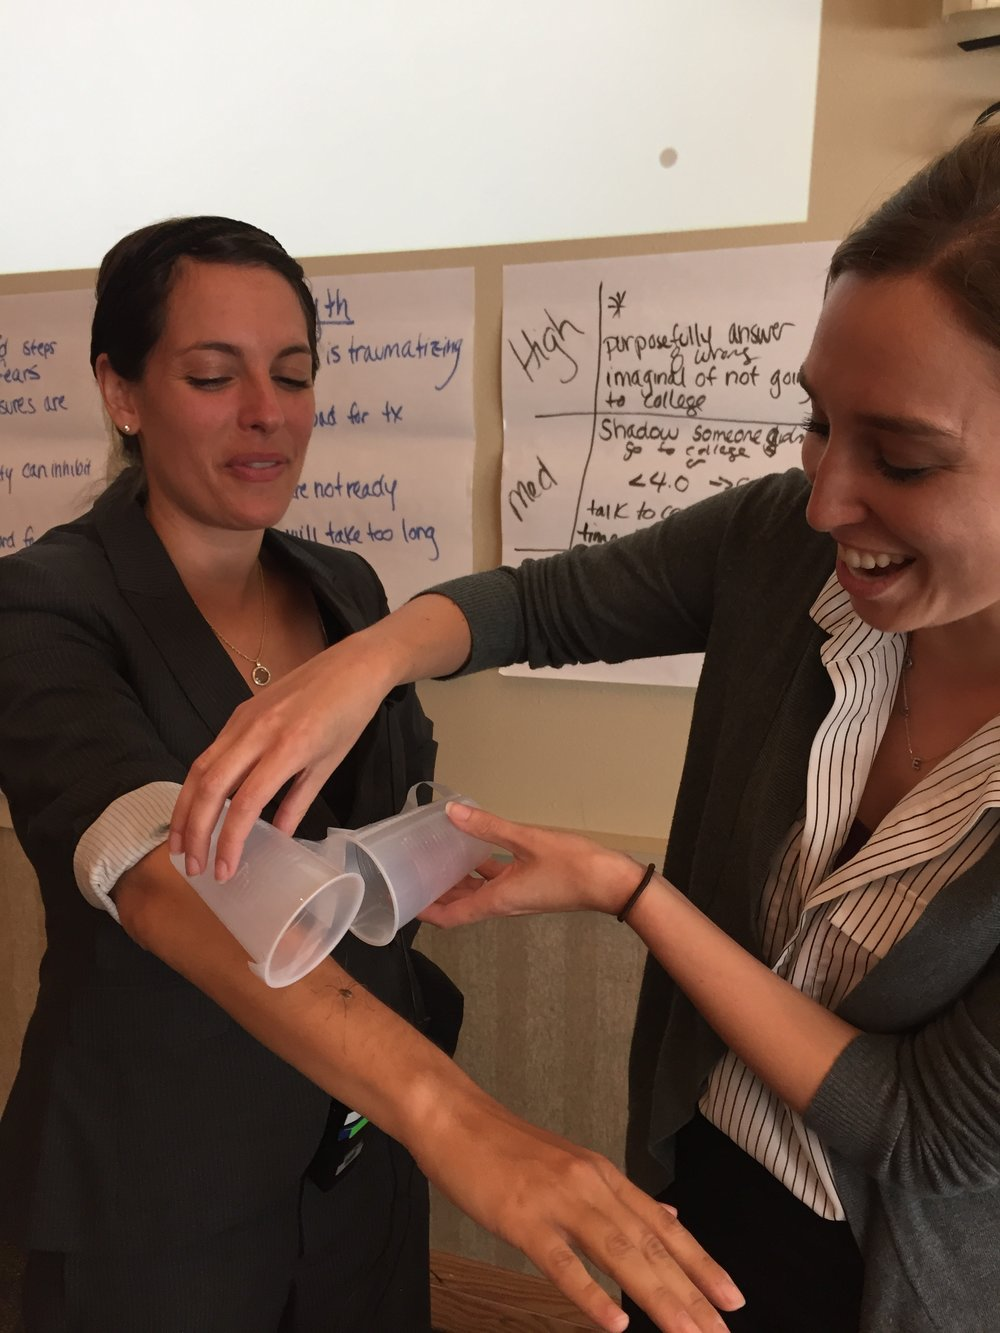 Rinad Beidas, PhD and Emily Becker Haimes, PhD demonstrate how to conduct an exposure with community clinicians in Seattle, Washington (August, 2016)